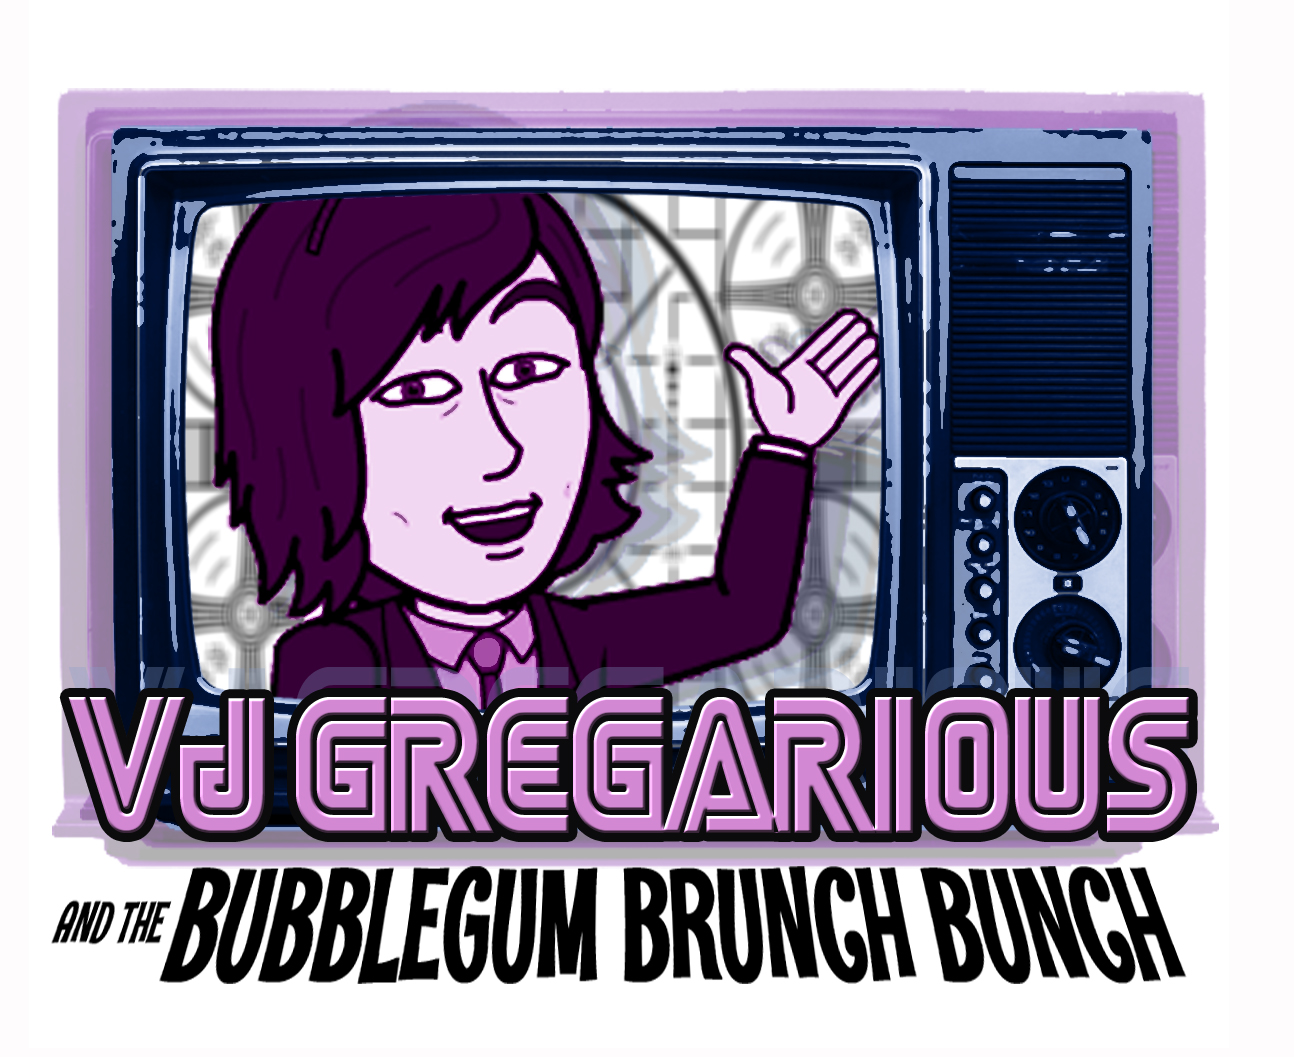 VJ Gregarious and The Bubblegum Brunch Bunch